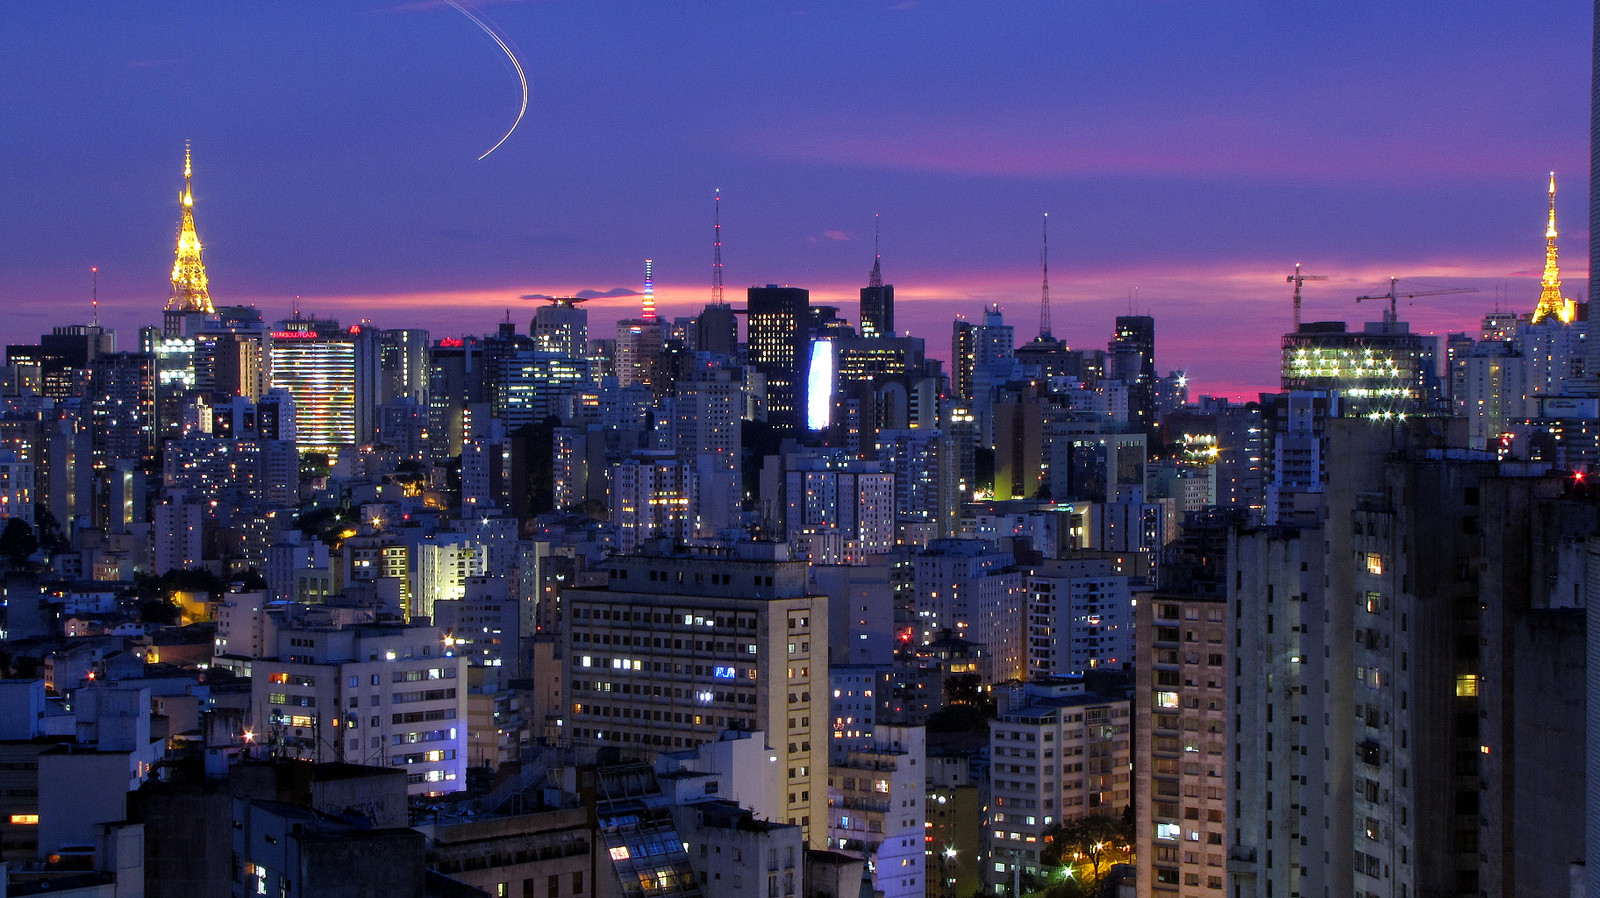 São Paulo entre as 10 cidades com skyline mais impactantes do mundo, São Paulo. © Júlio Boaro, via Flickr. Used under <a href='https://creativecommons.org/licenses/by-sa/2.0/'>Creative Commons</a>